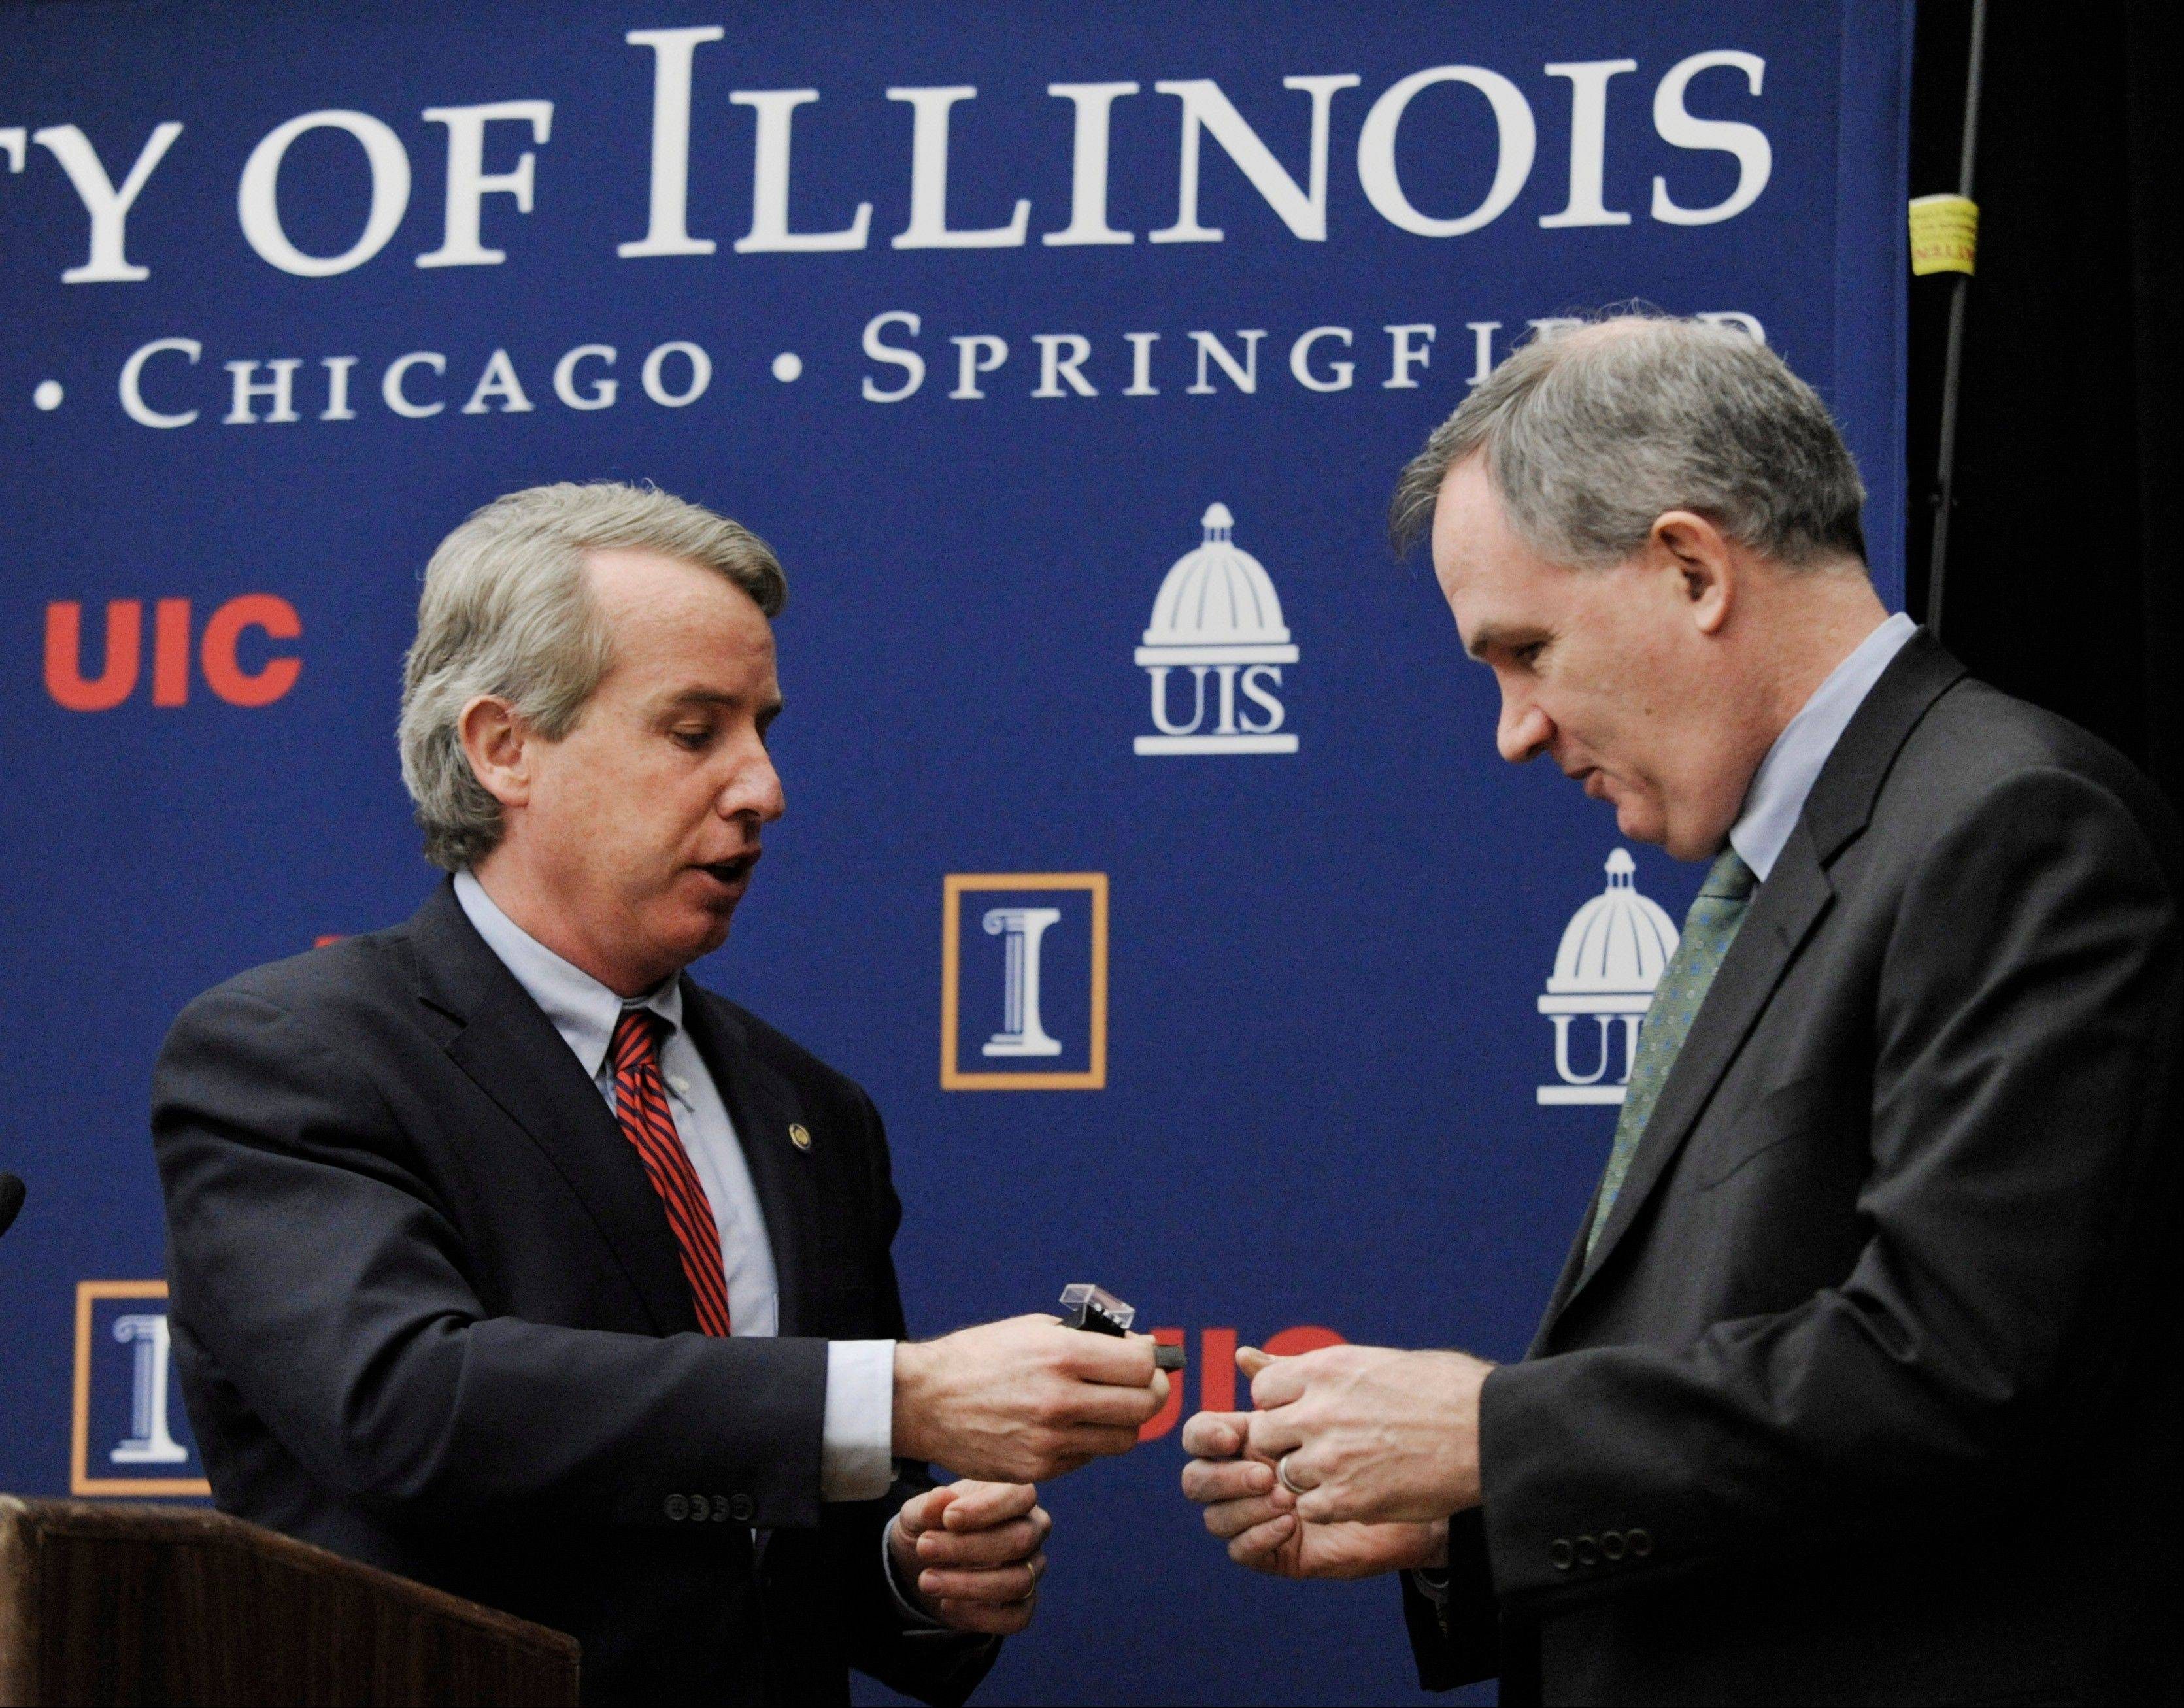 University of Illinois Board of Trustees Chairman Christopher Kennedy, left, congratulates new board member Patrick Fitzgerald during a meeting Thursday at the University of Illinois in Chicago.